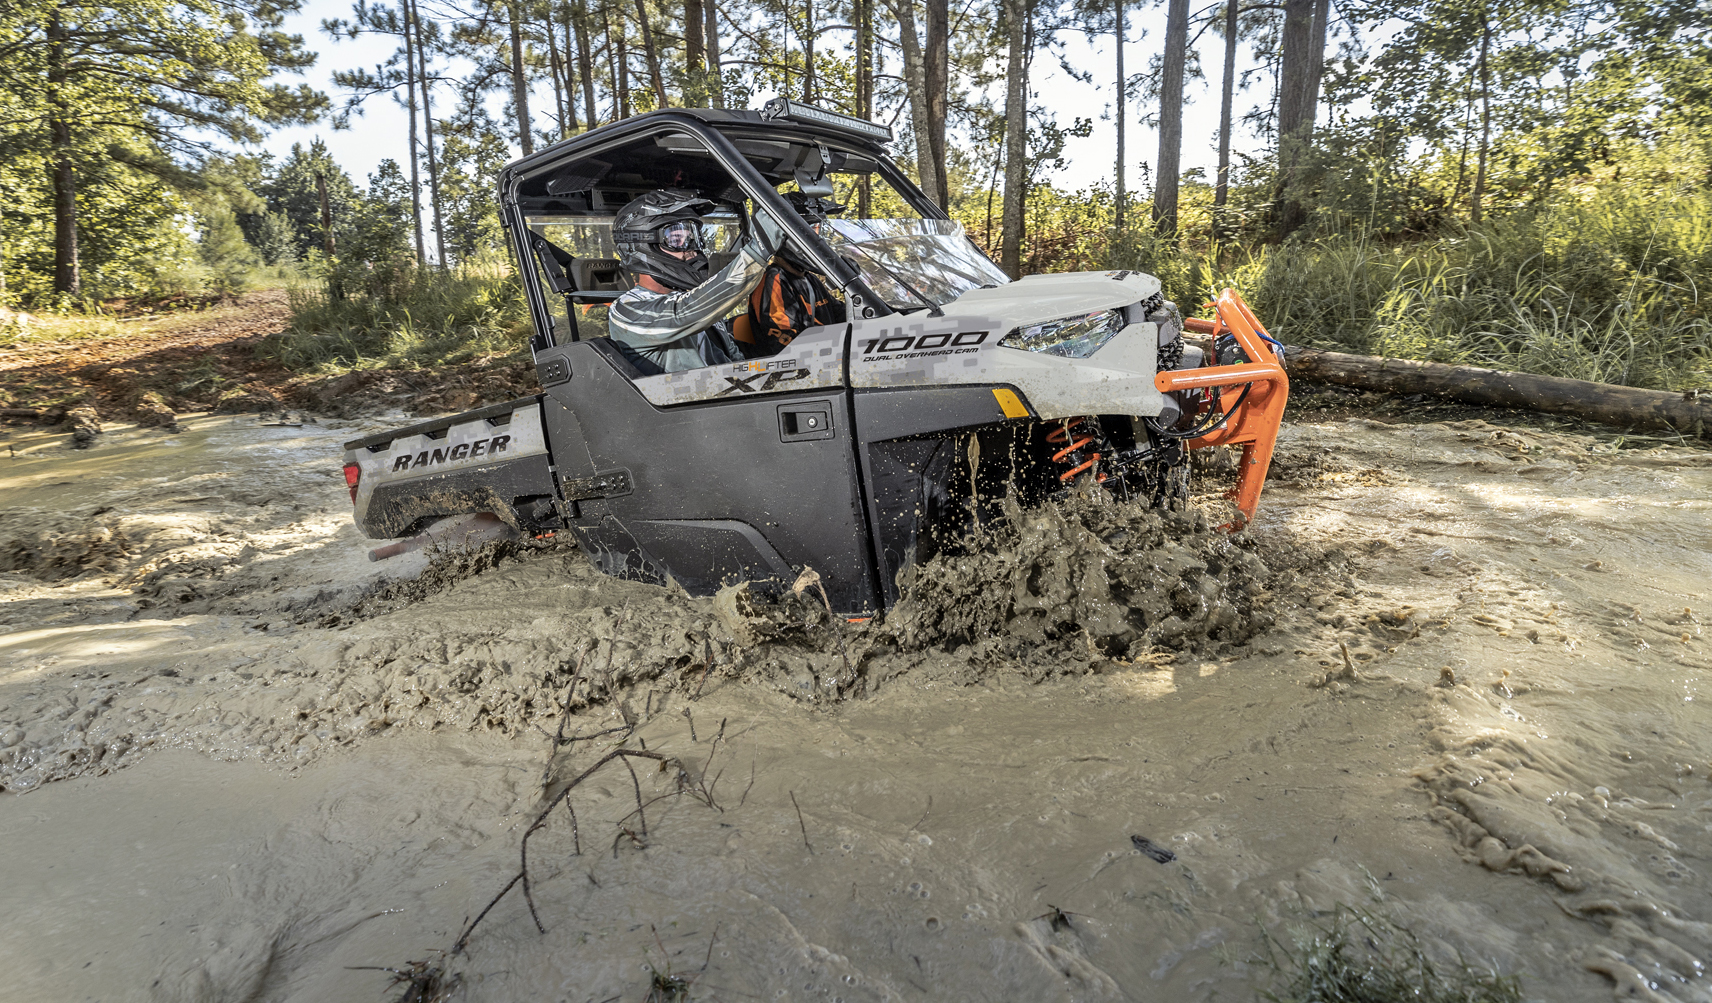 2021-ranger-xp-1000-high-lifter-mud-b.jpg